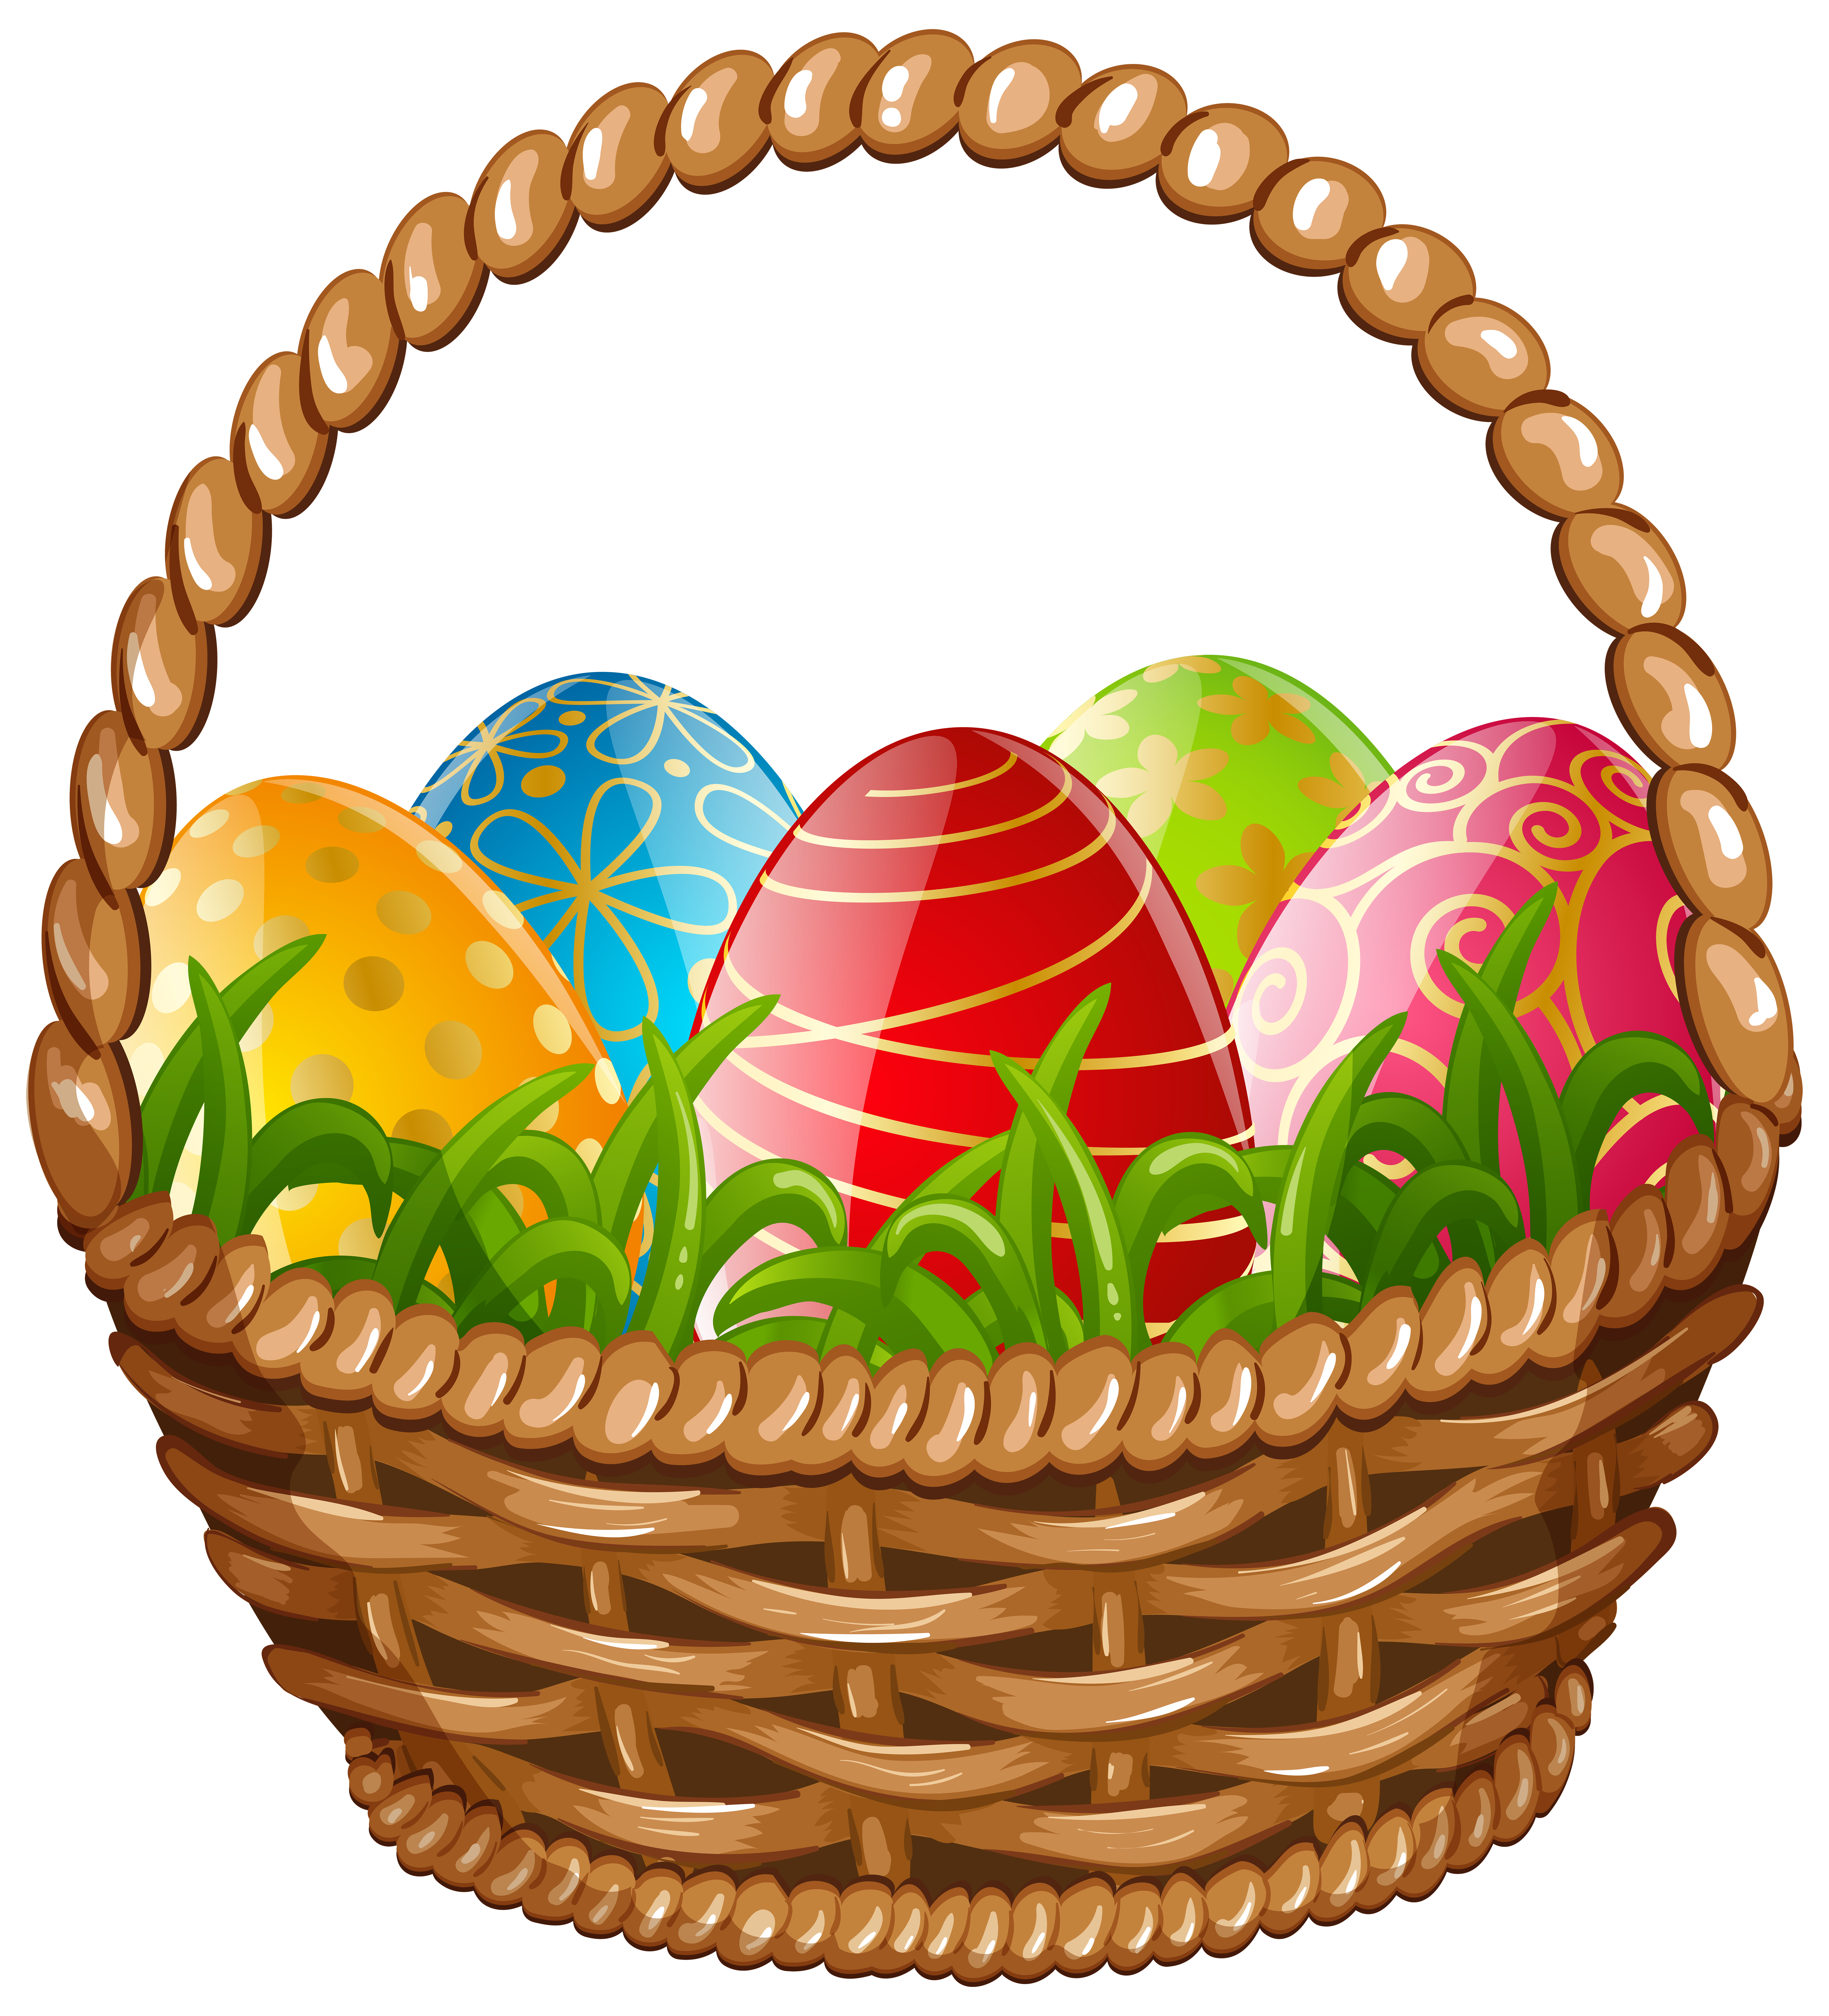 Easter bunny basket png. Egg clipart at getdrawings